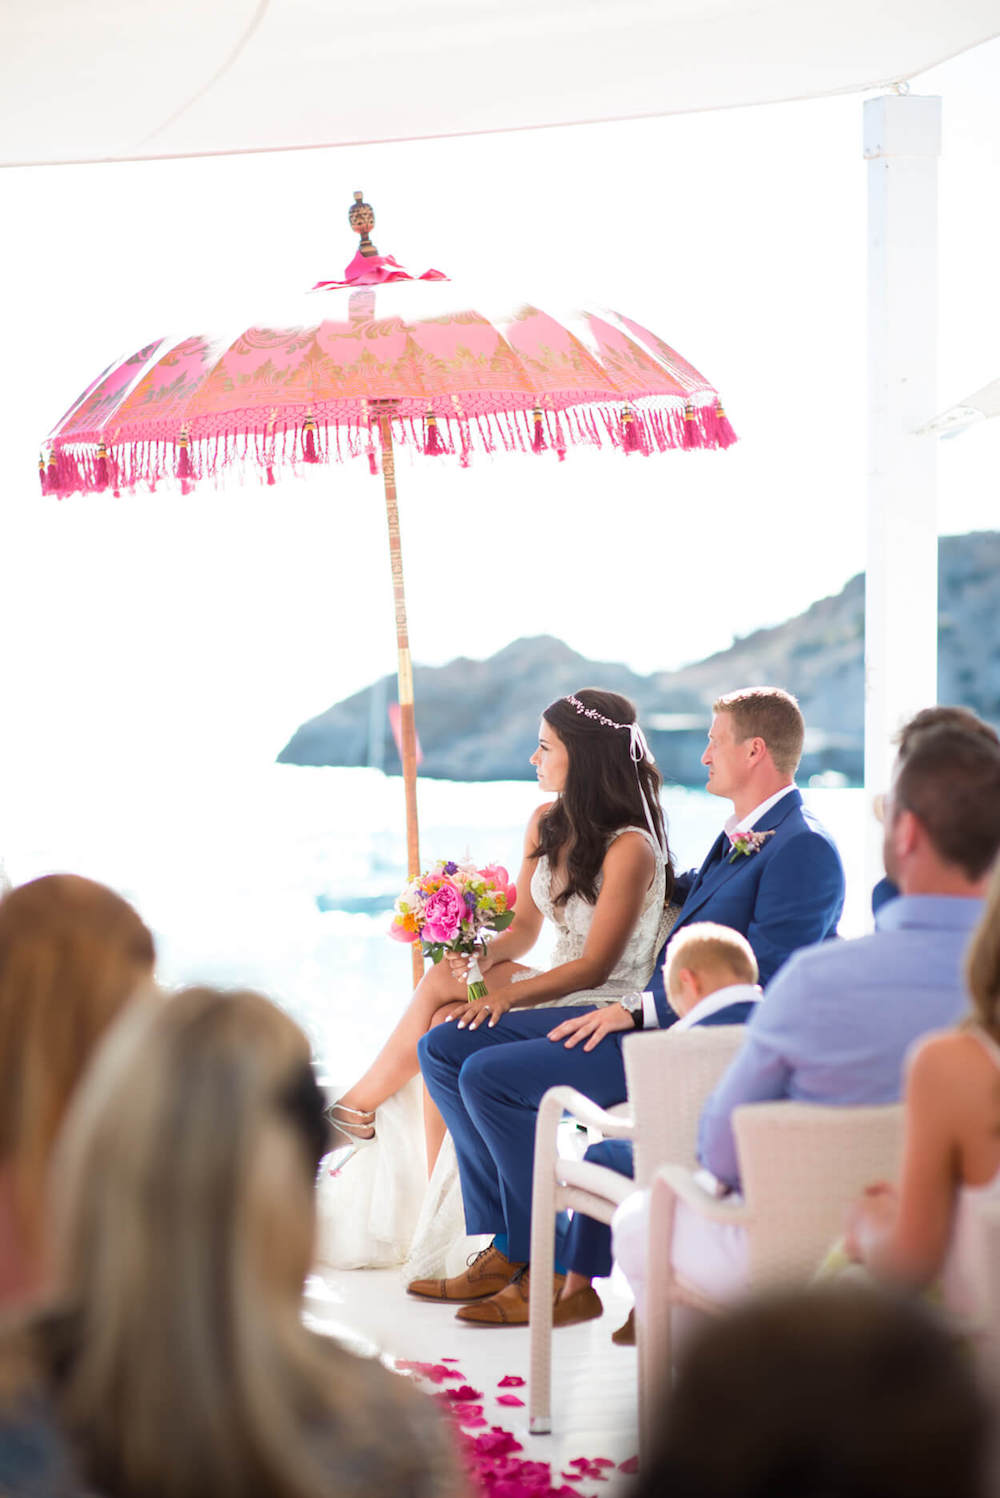 Colourful flower wedding ceremony bride groom beach venue sunset view Galia Lahav